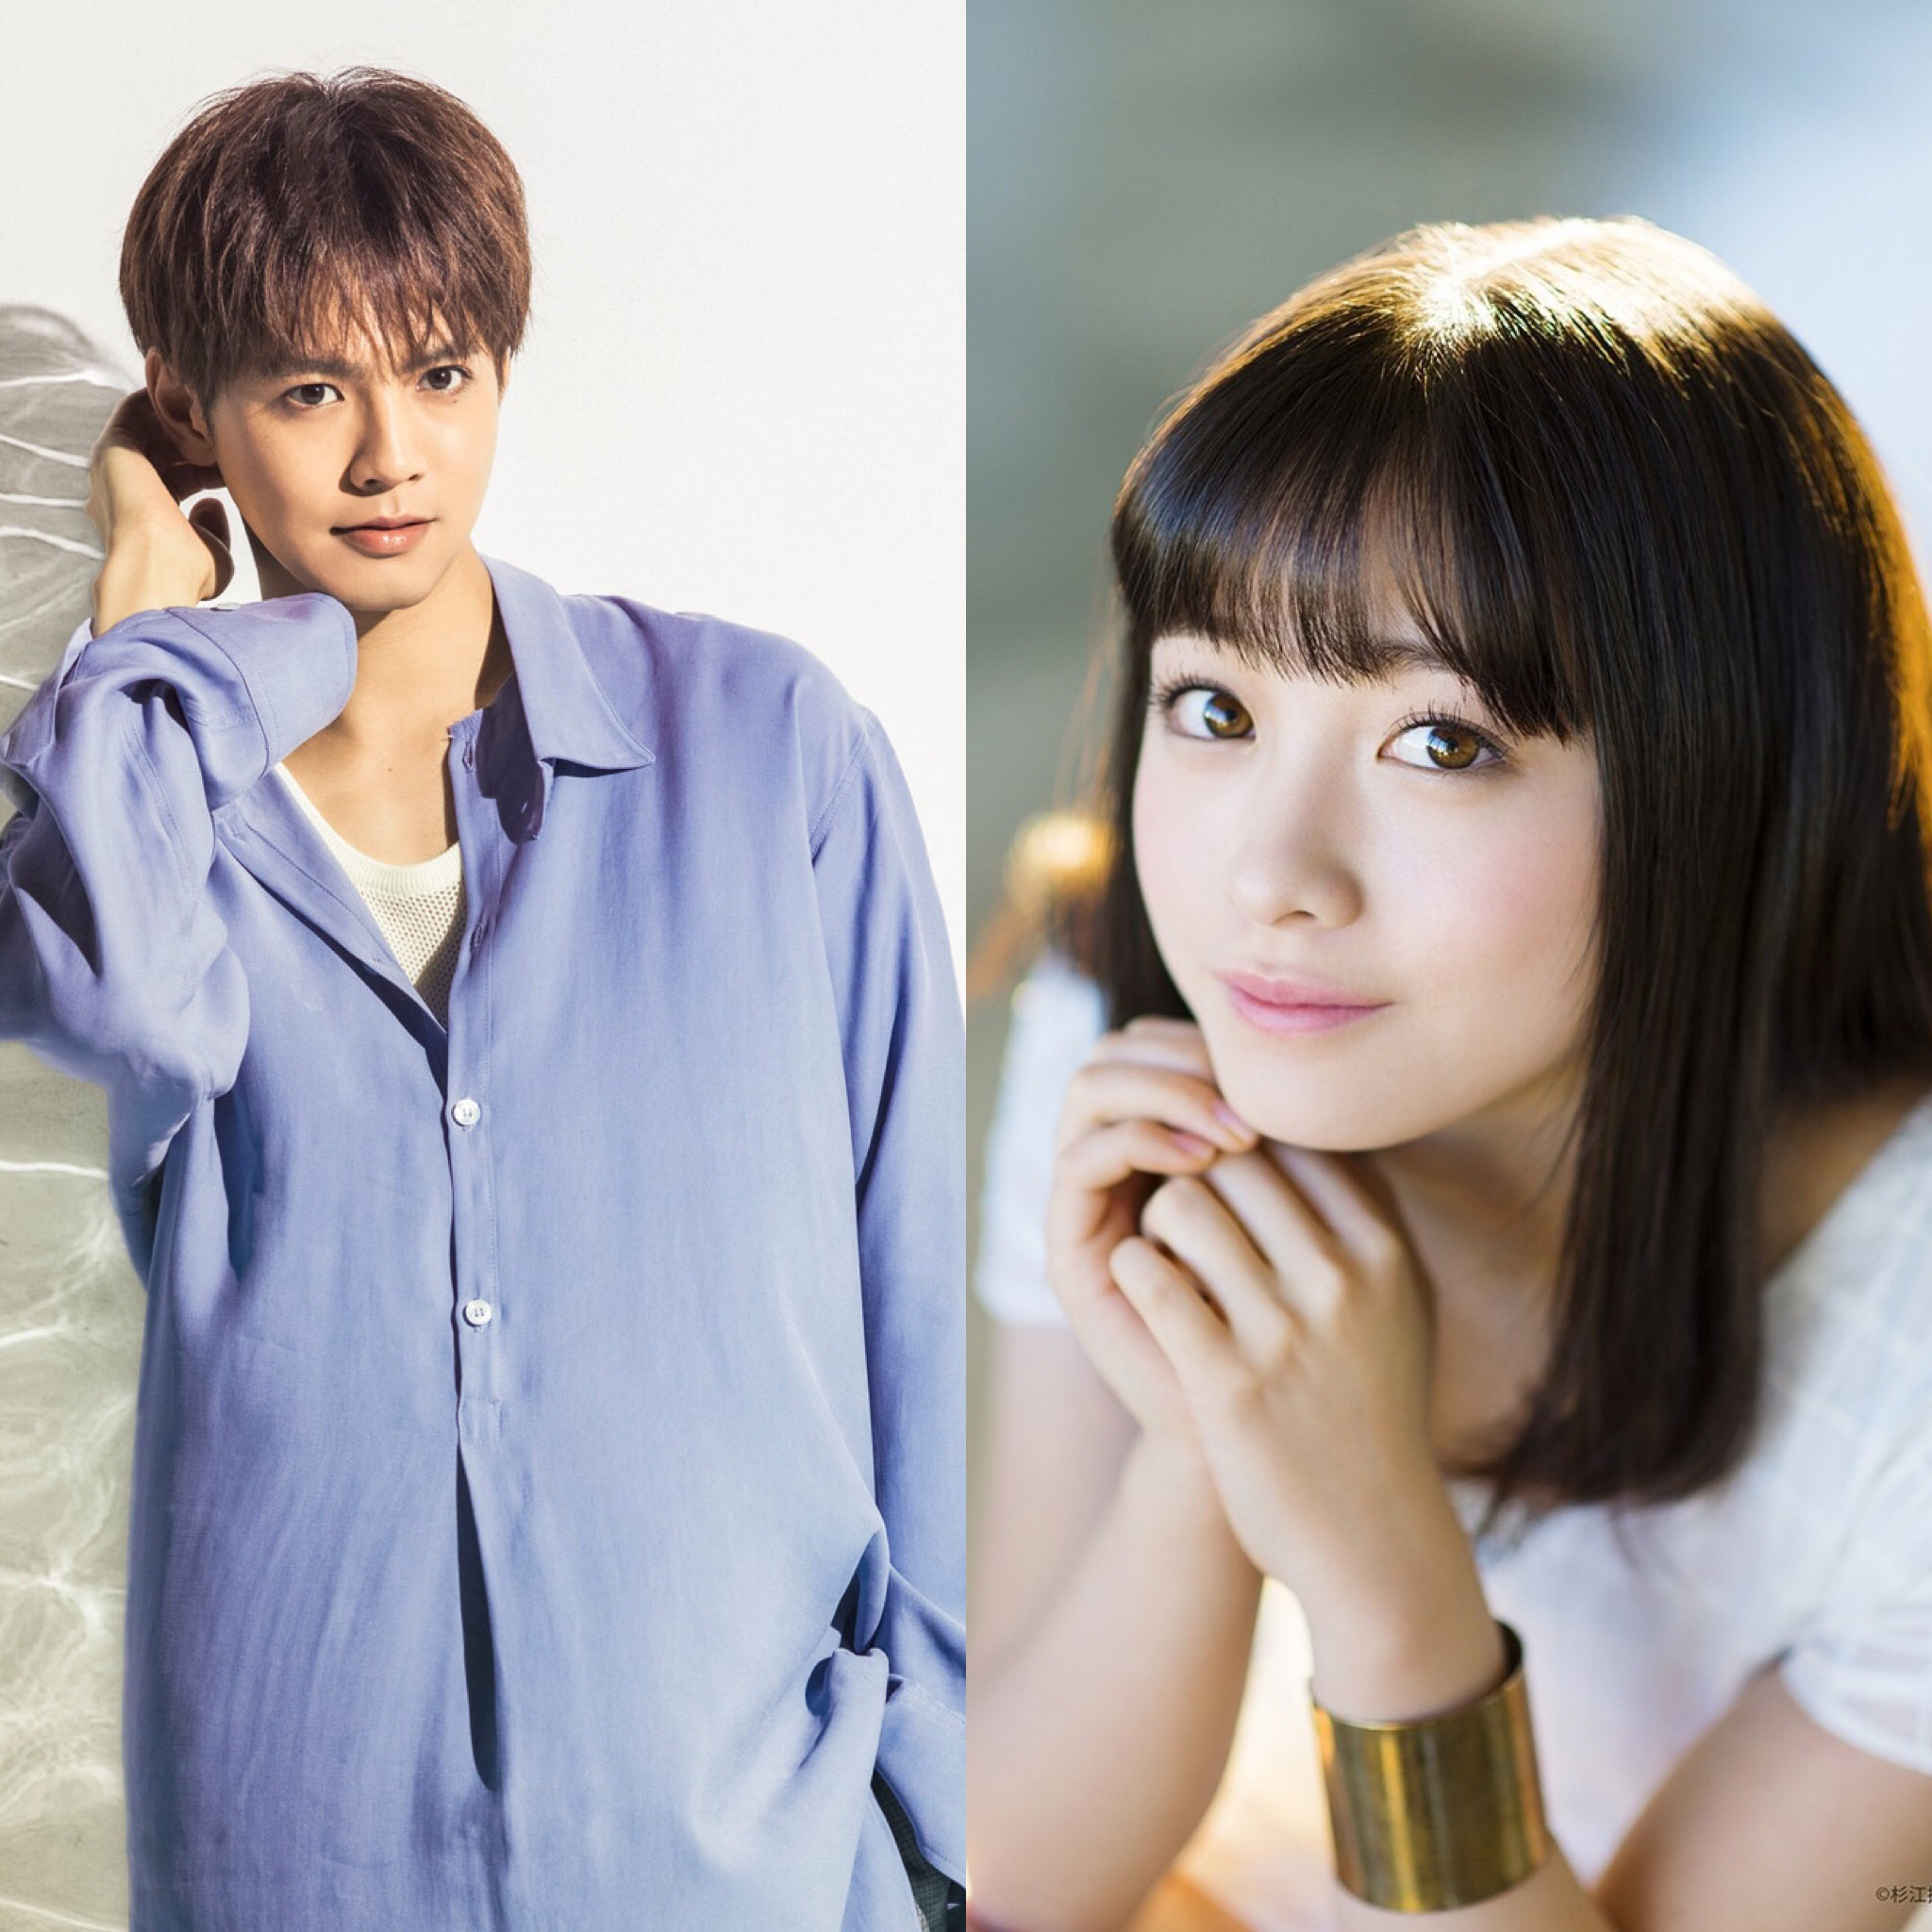 "GENERATIONS Ryota Katayose & Kanna Hashimoto star in new film ""Gozen 0 ji, Kiss Shi ni Kite yo"""